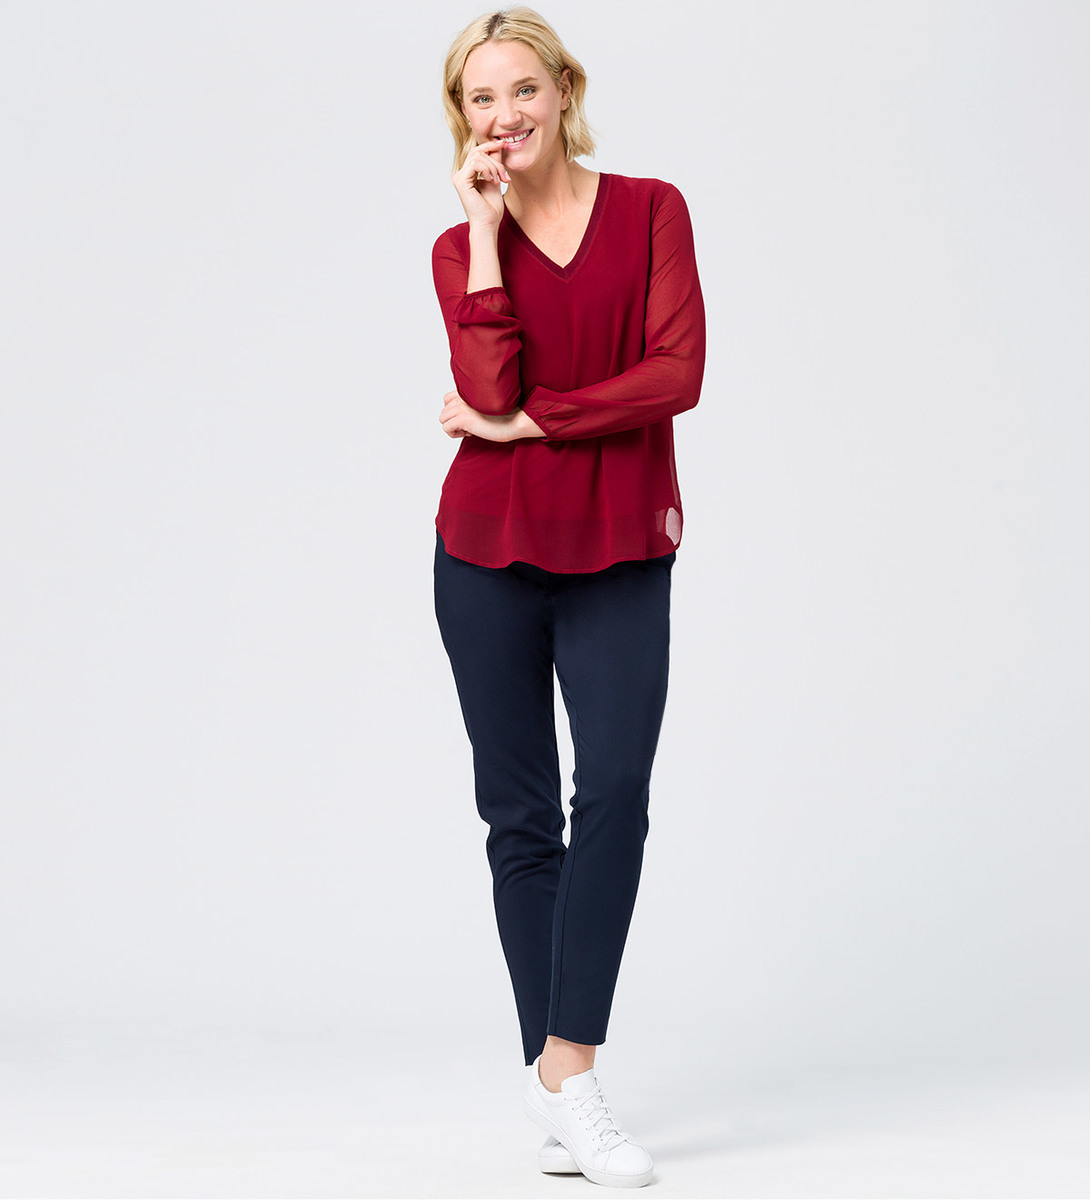 Bluse im Layering-Look in wine red